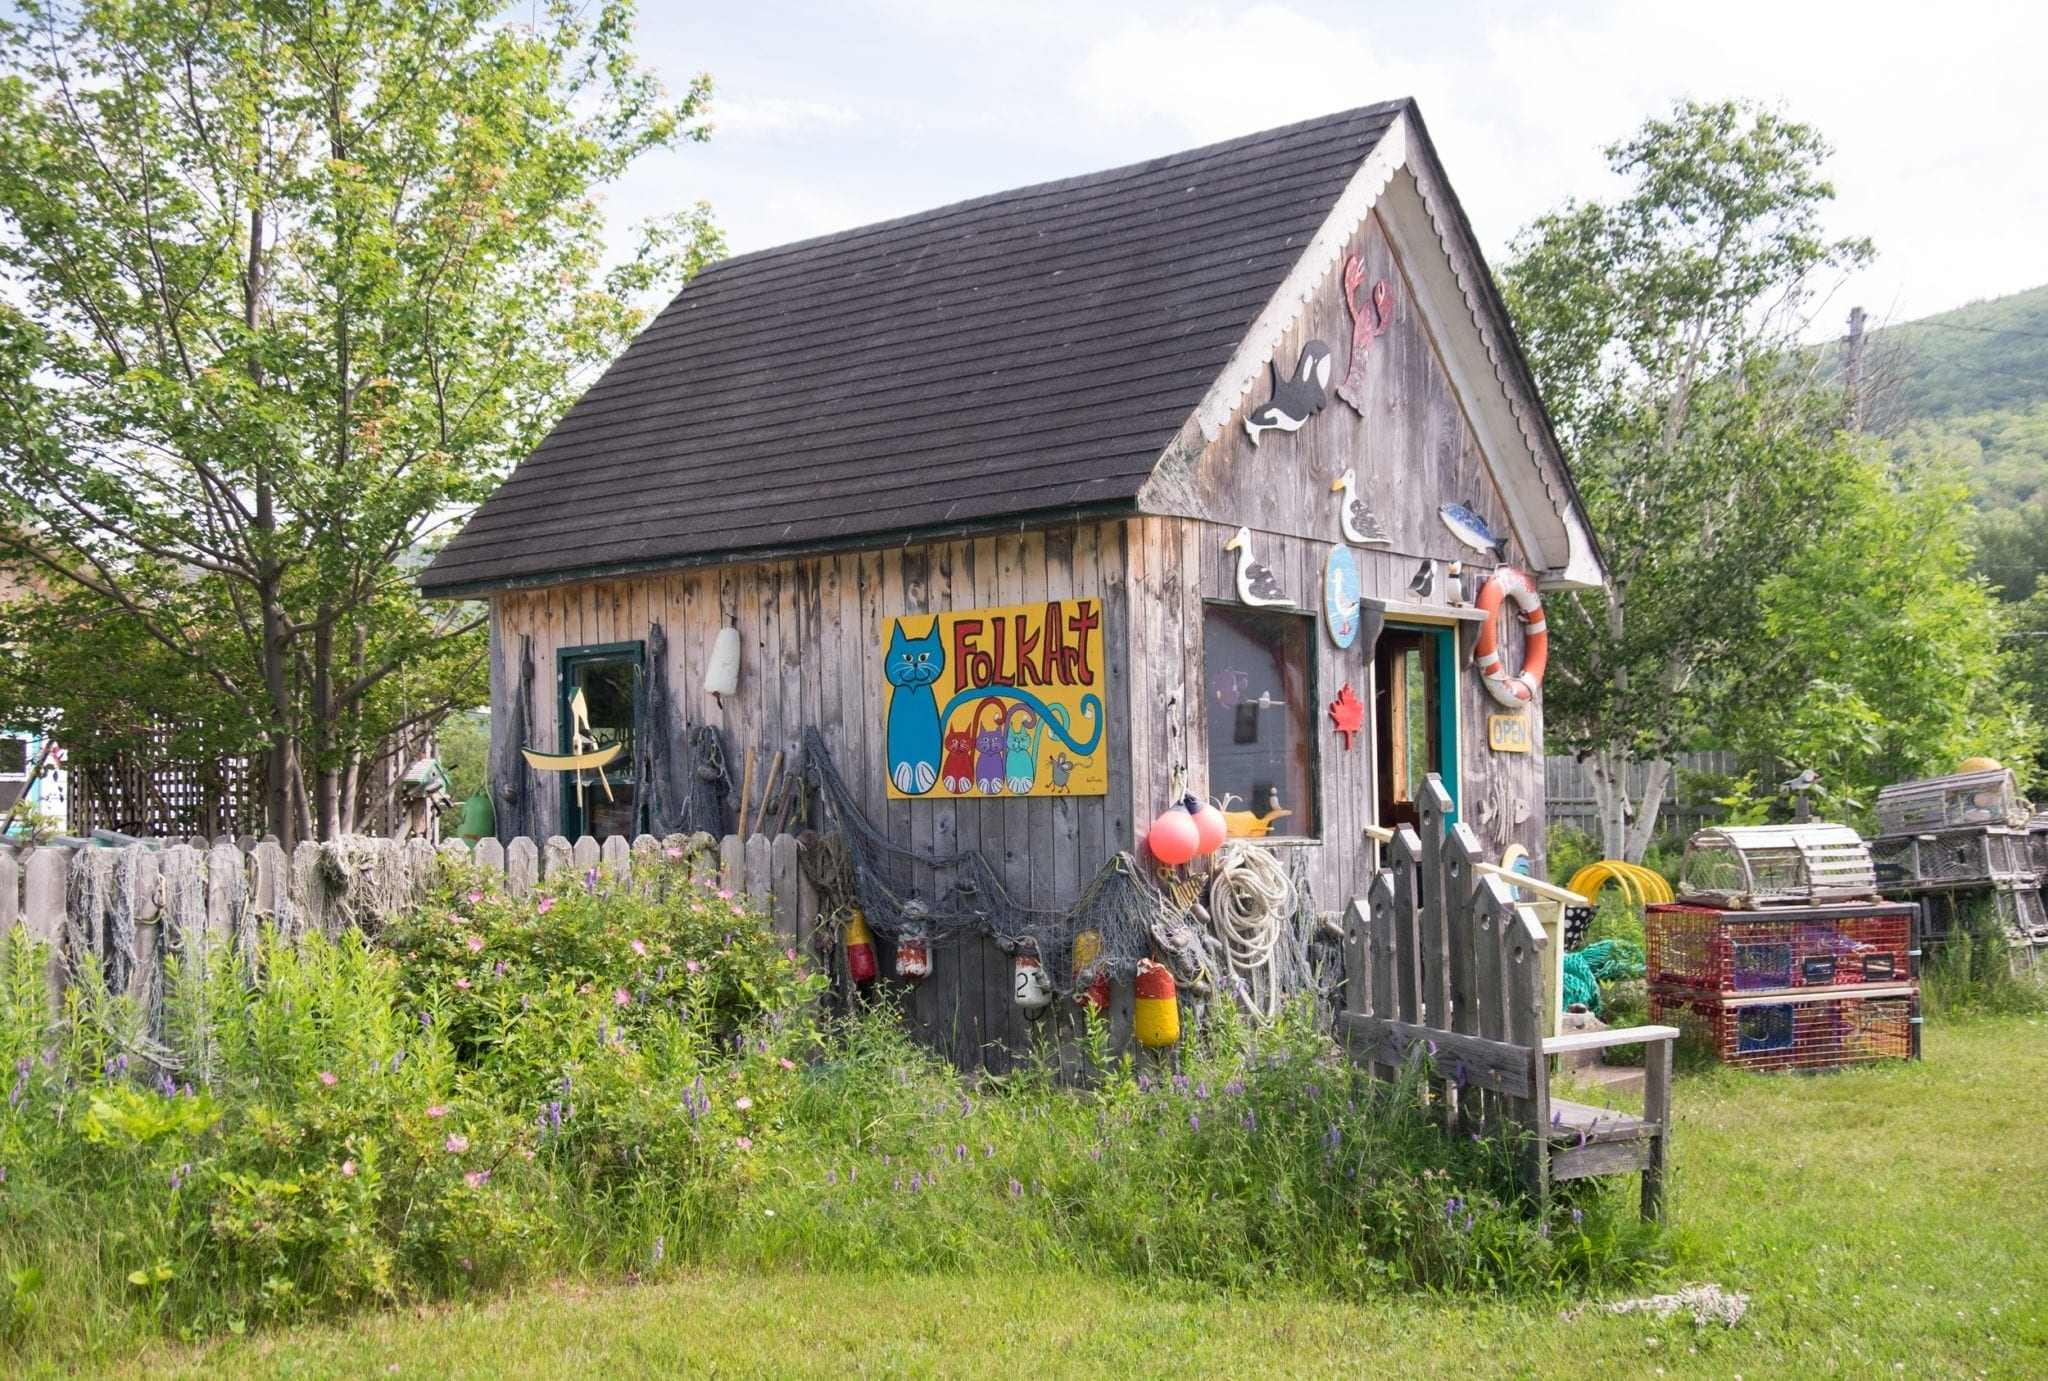 A small cabin covered with wooden art and brightly painted signs, surrounded by a fence overgrown with grass.